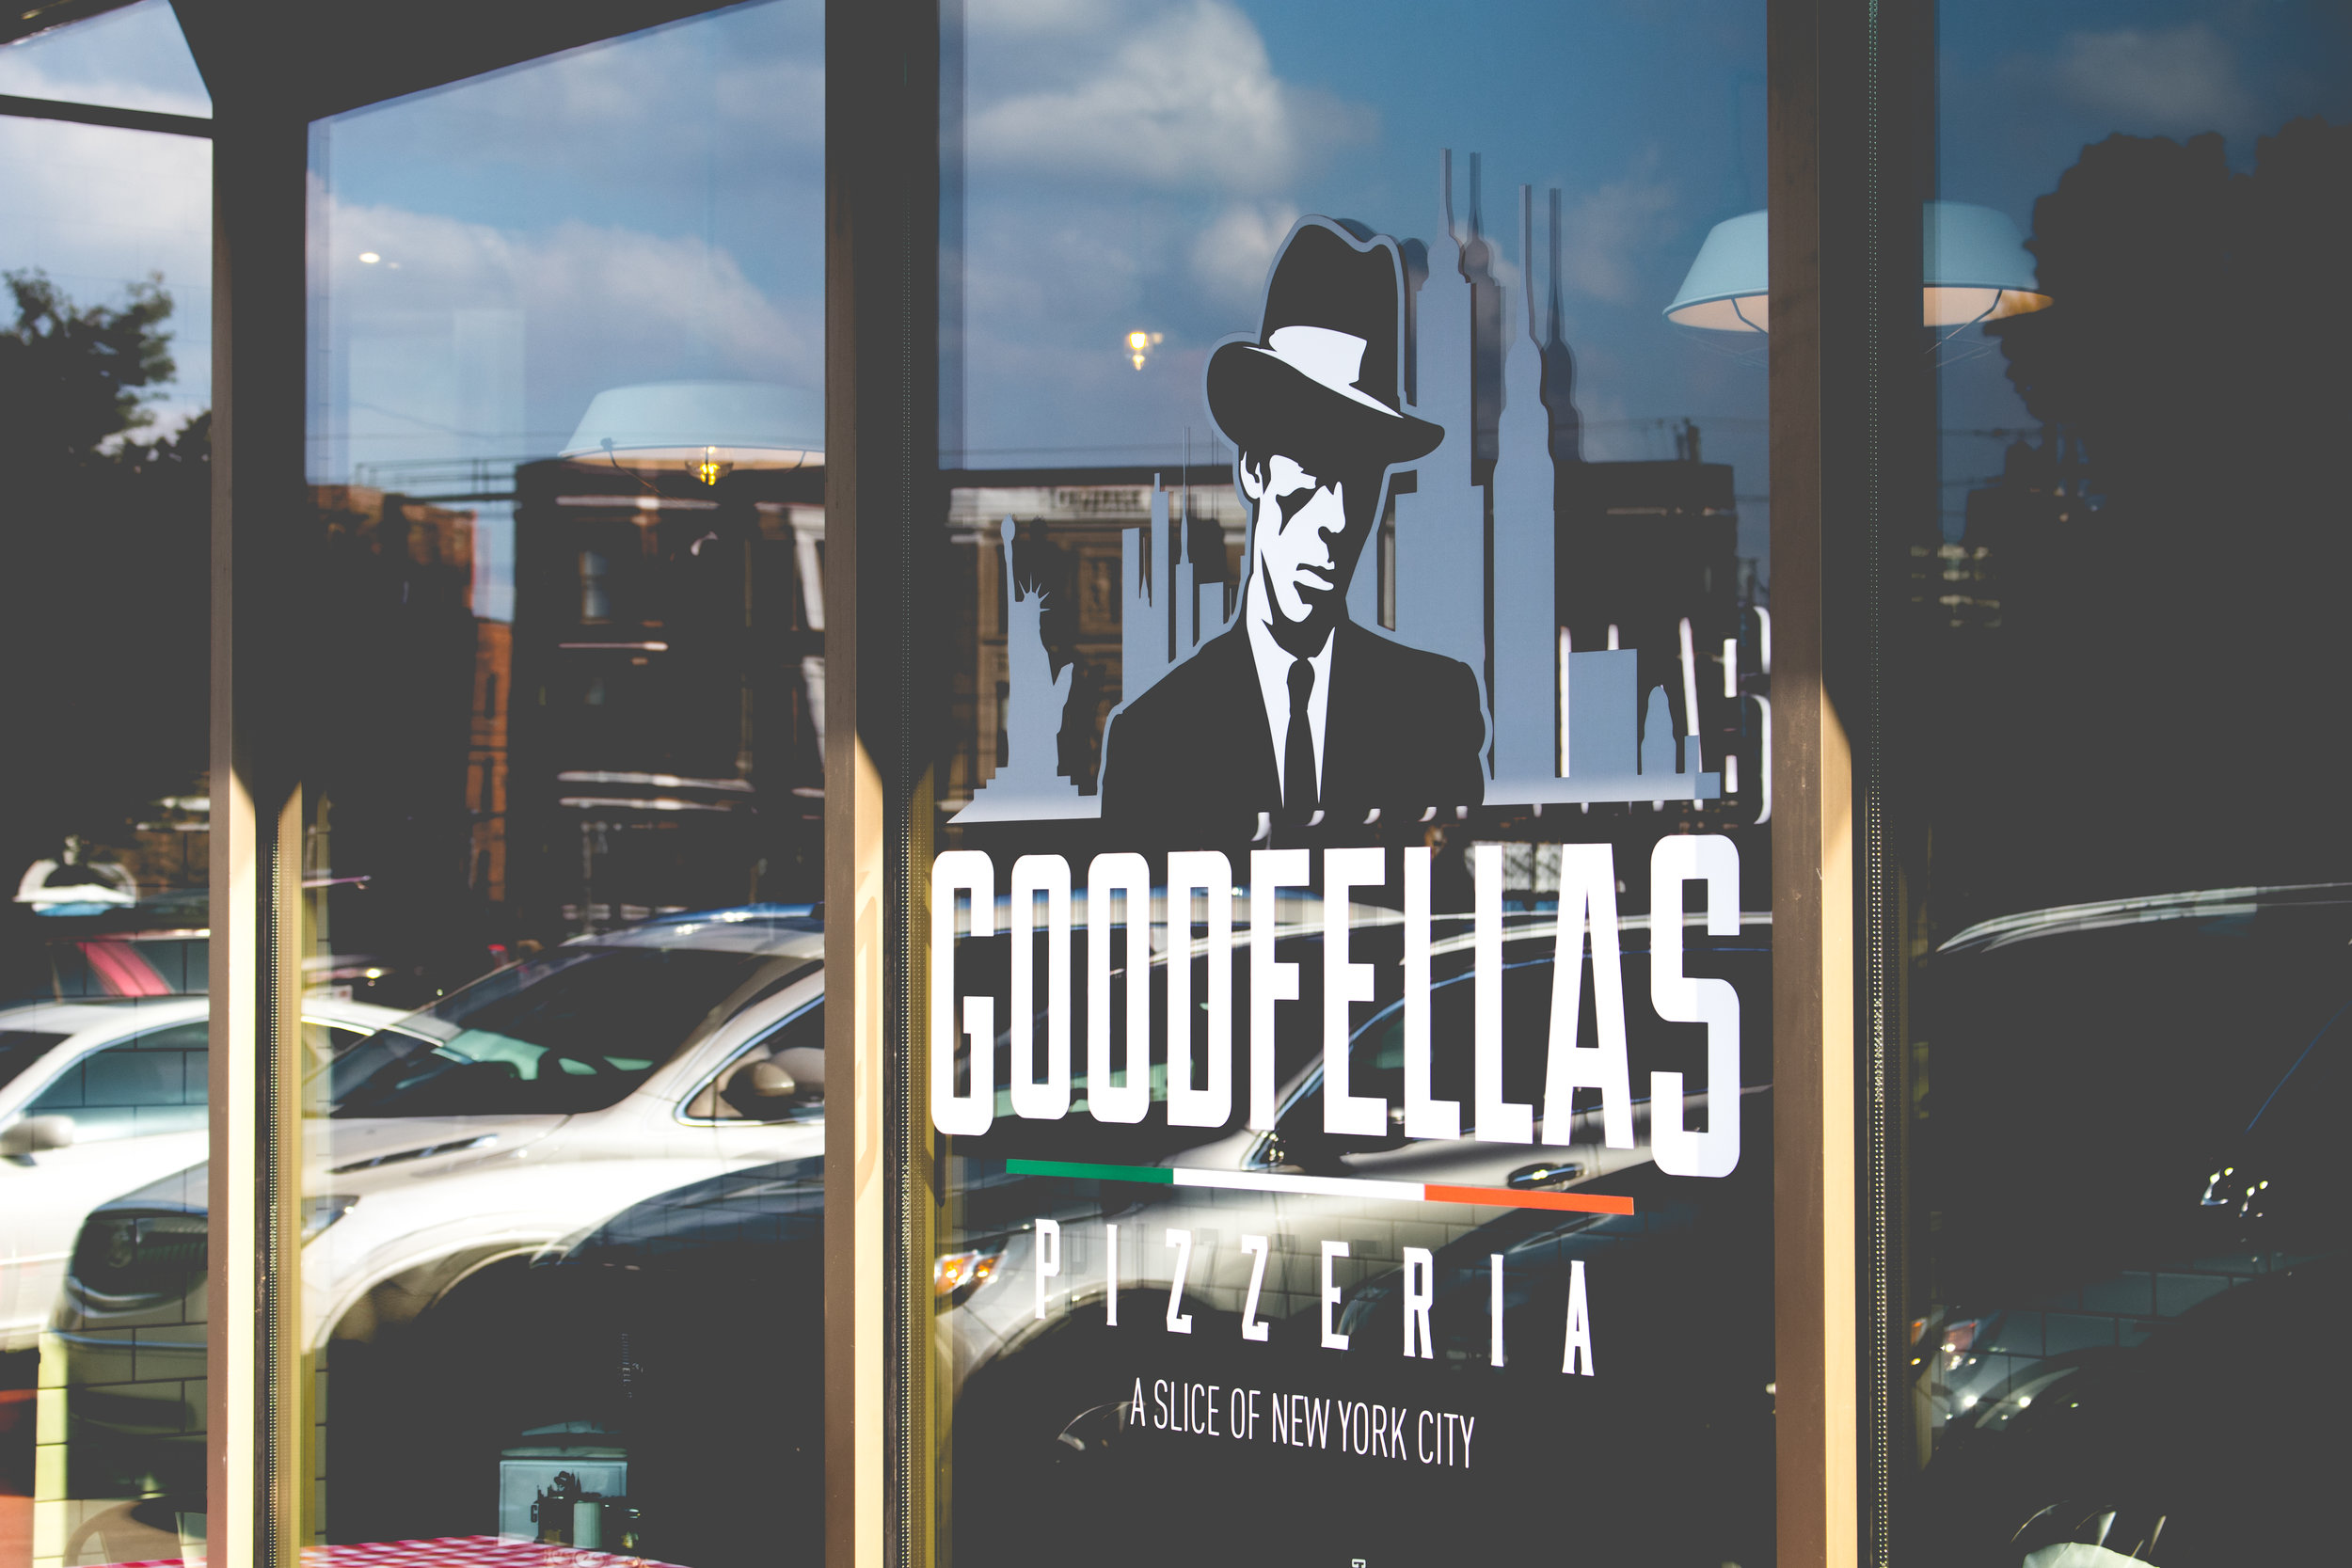 Episode 19: Bill Whitlow, Goodfellas Pizzeria & Wiseguy Lounge -